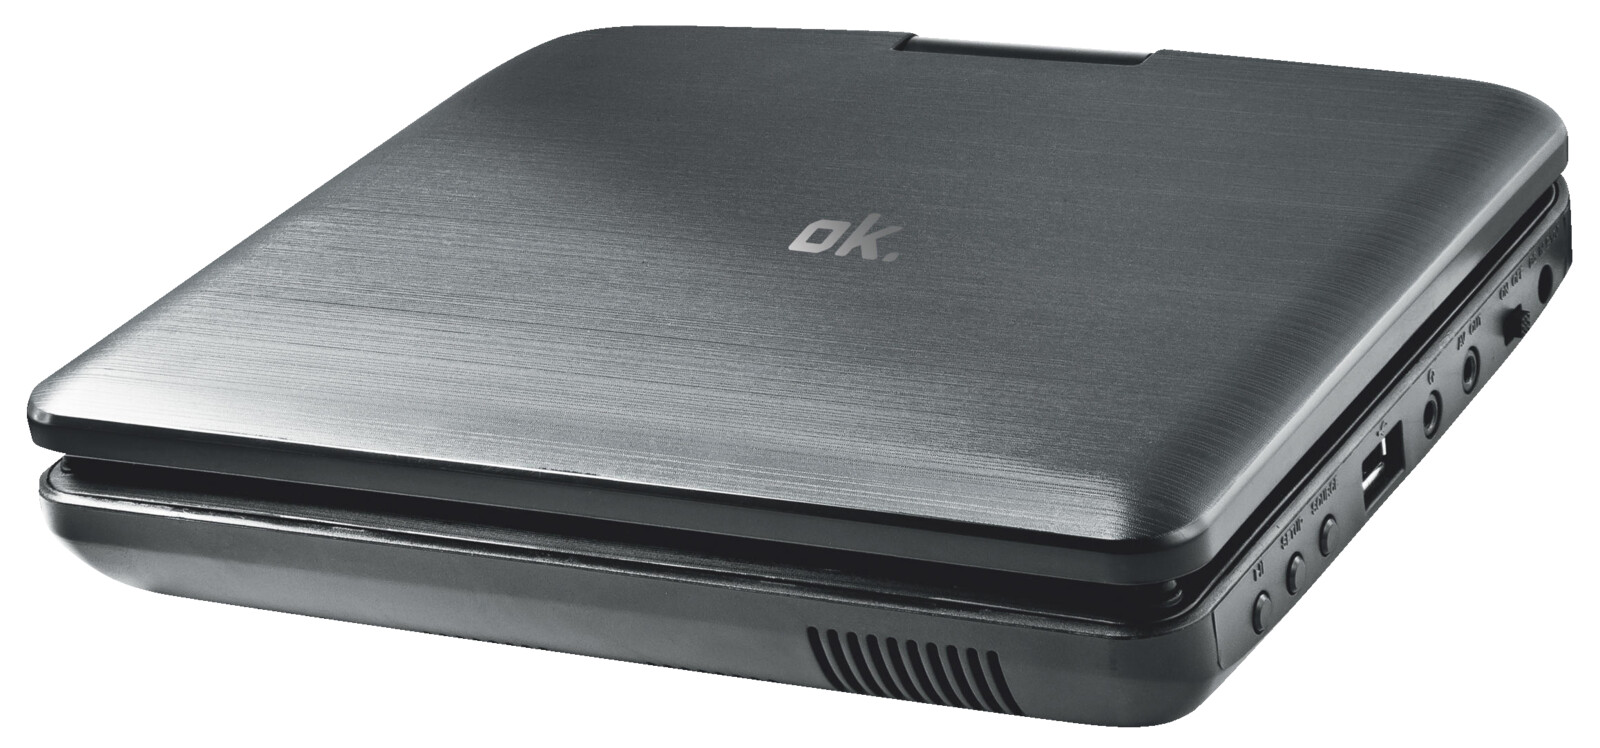 ok opd 920 tragbarer dvd player 9 zoll ebay. Black Bedroom Furniture Sets. Home Design Ideas